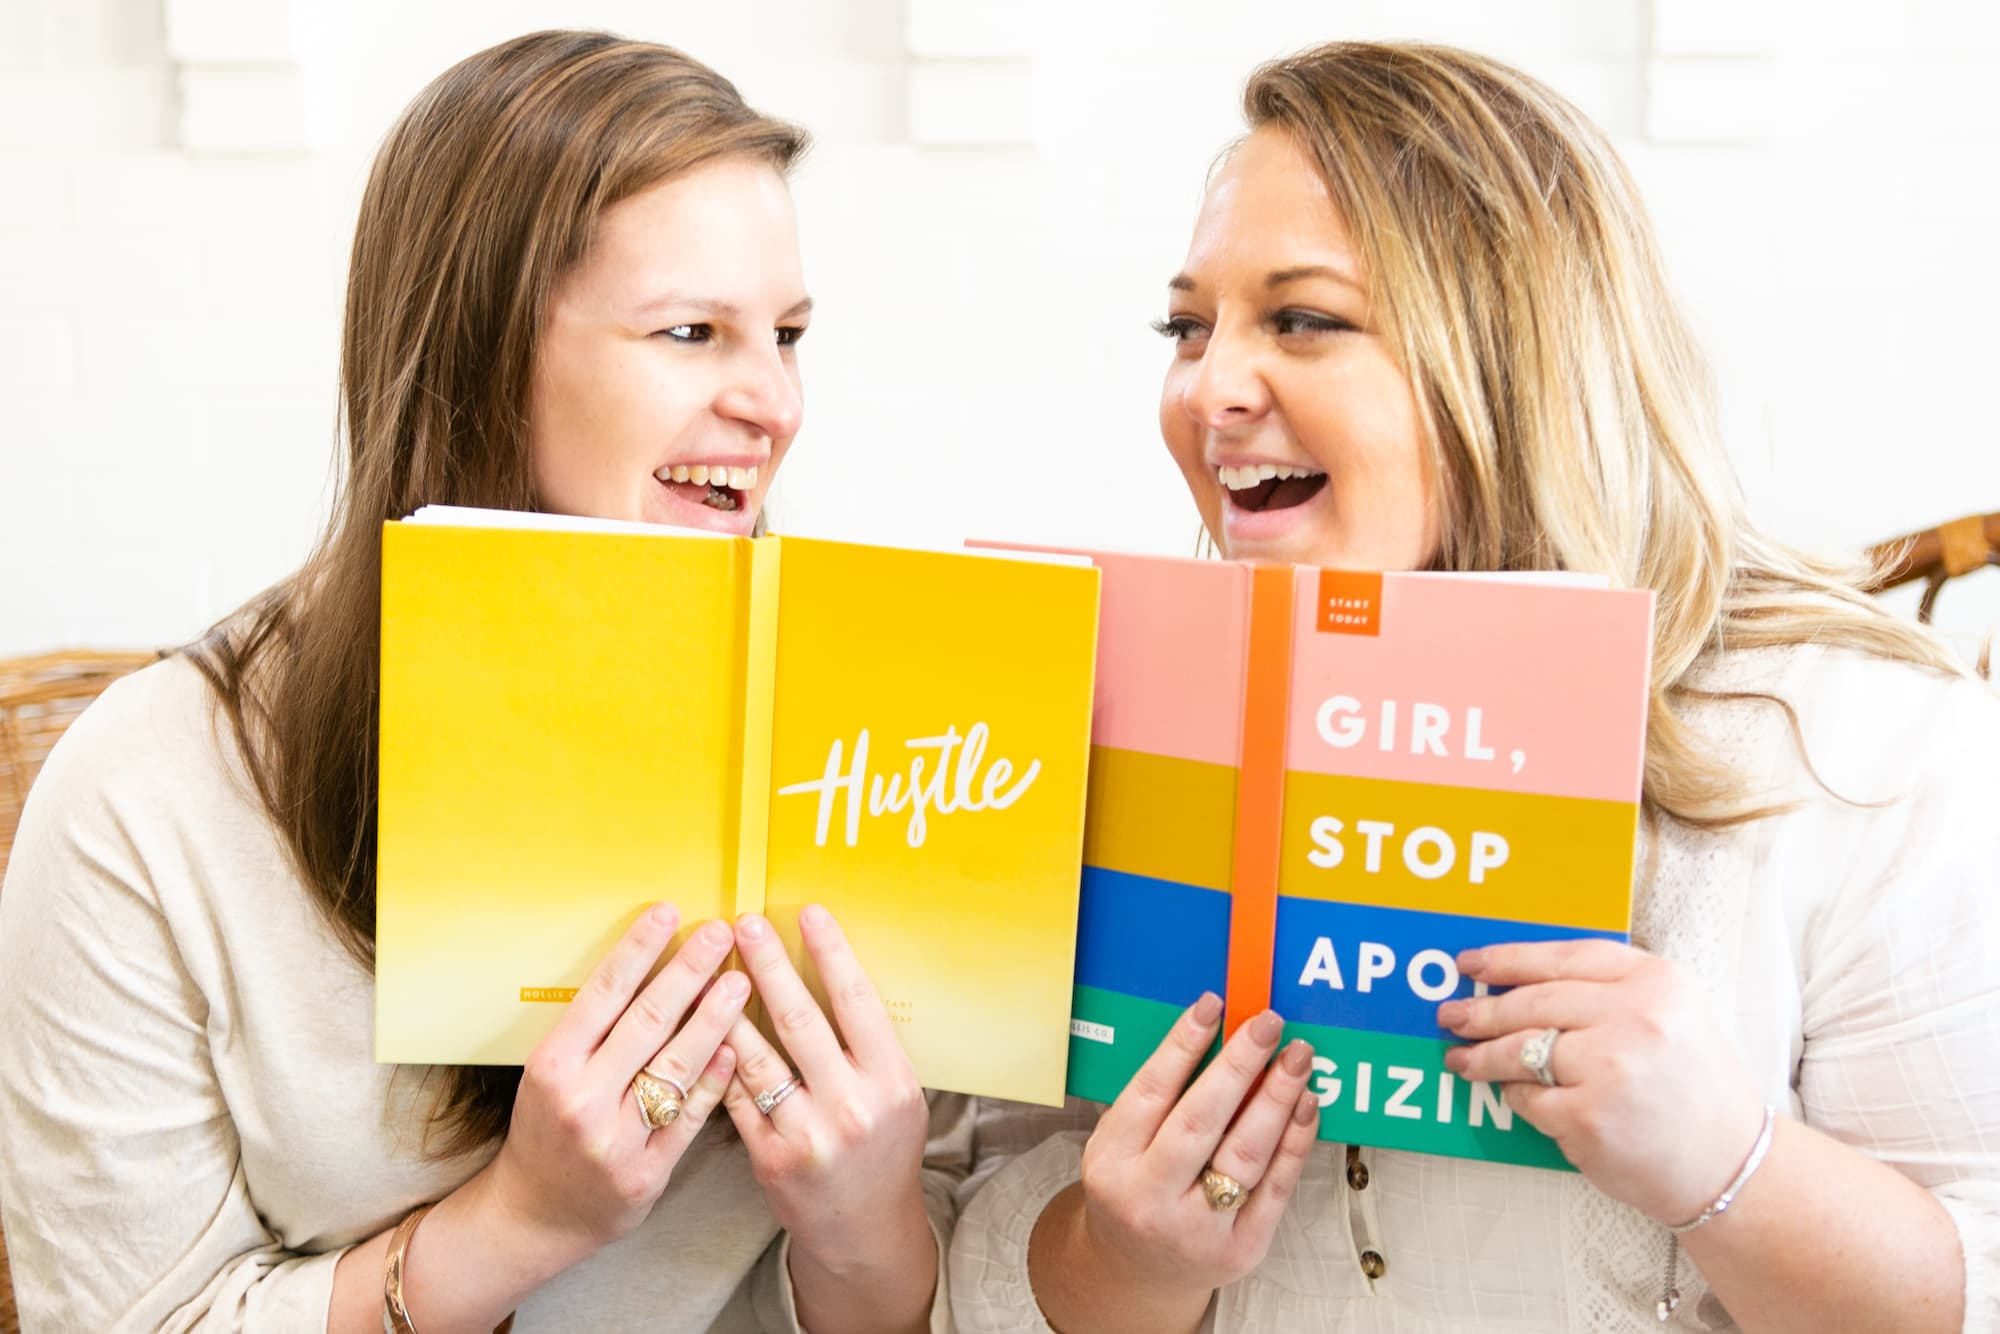 Creative entrepreneurs smiling with books by Paty Araujo Photography